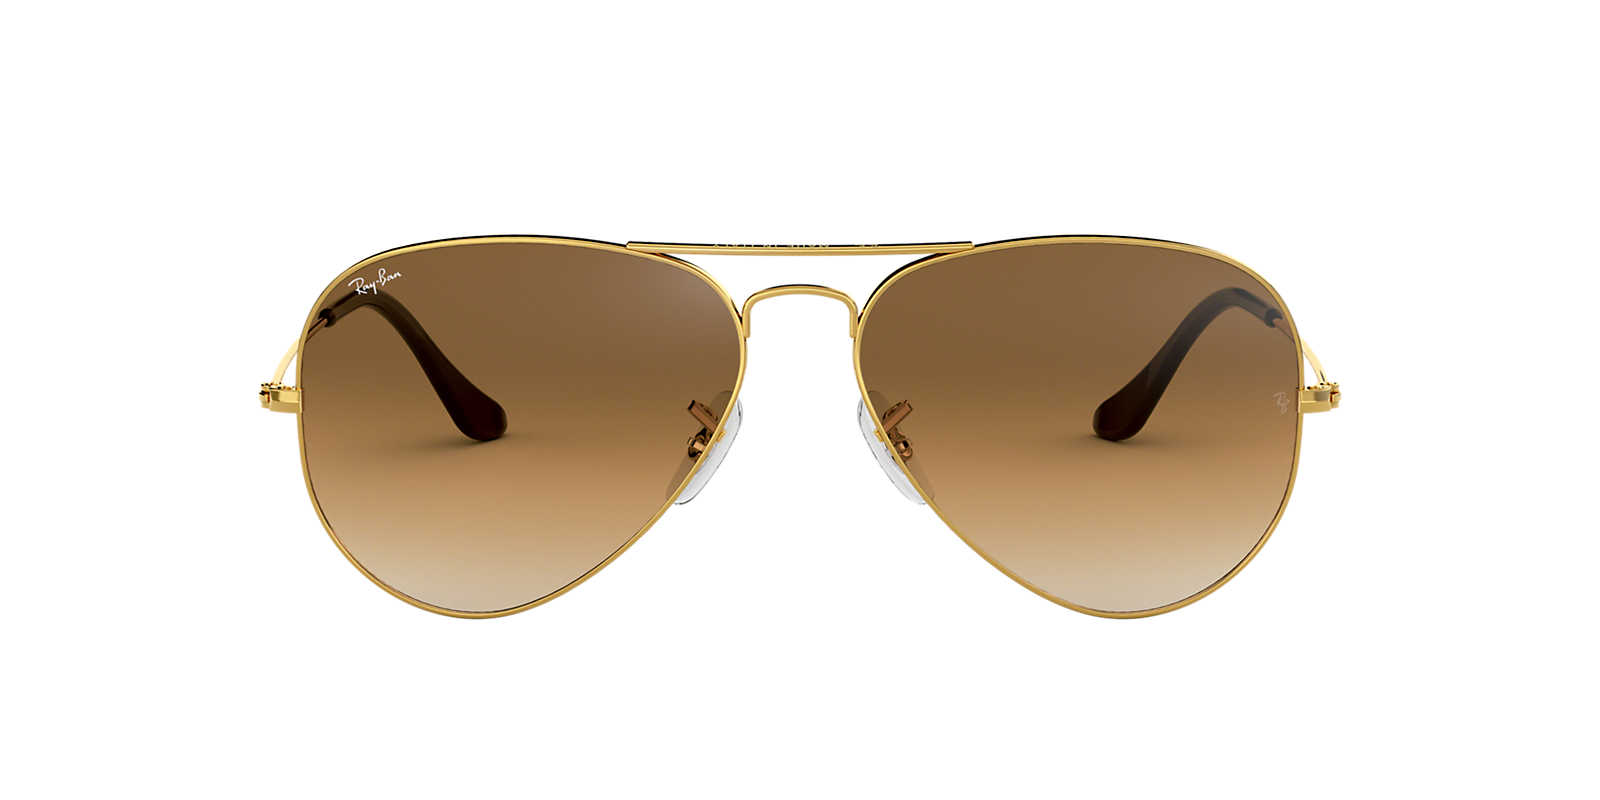 ray ban unisex aviator sunglasses  ray ban gold shiny rb3025 58 original aviator brown lenses 58mm